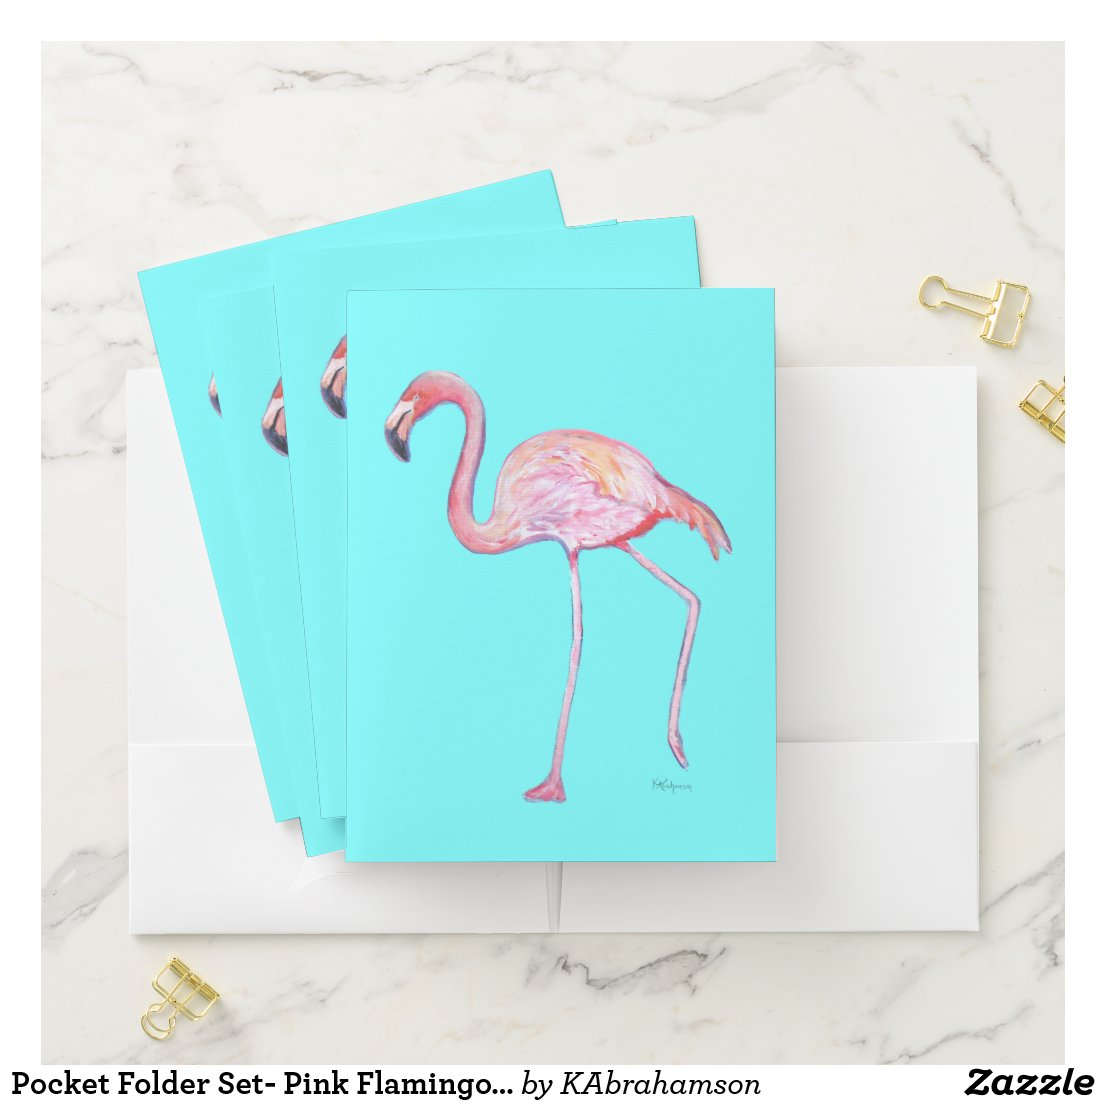 Pocket Folder Set- Pink Flamingo Turquoise